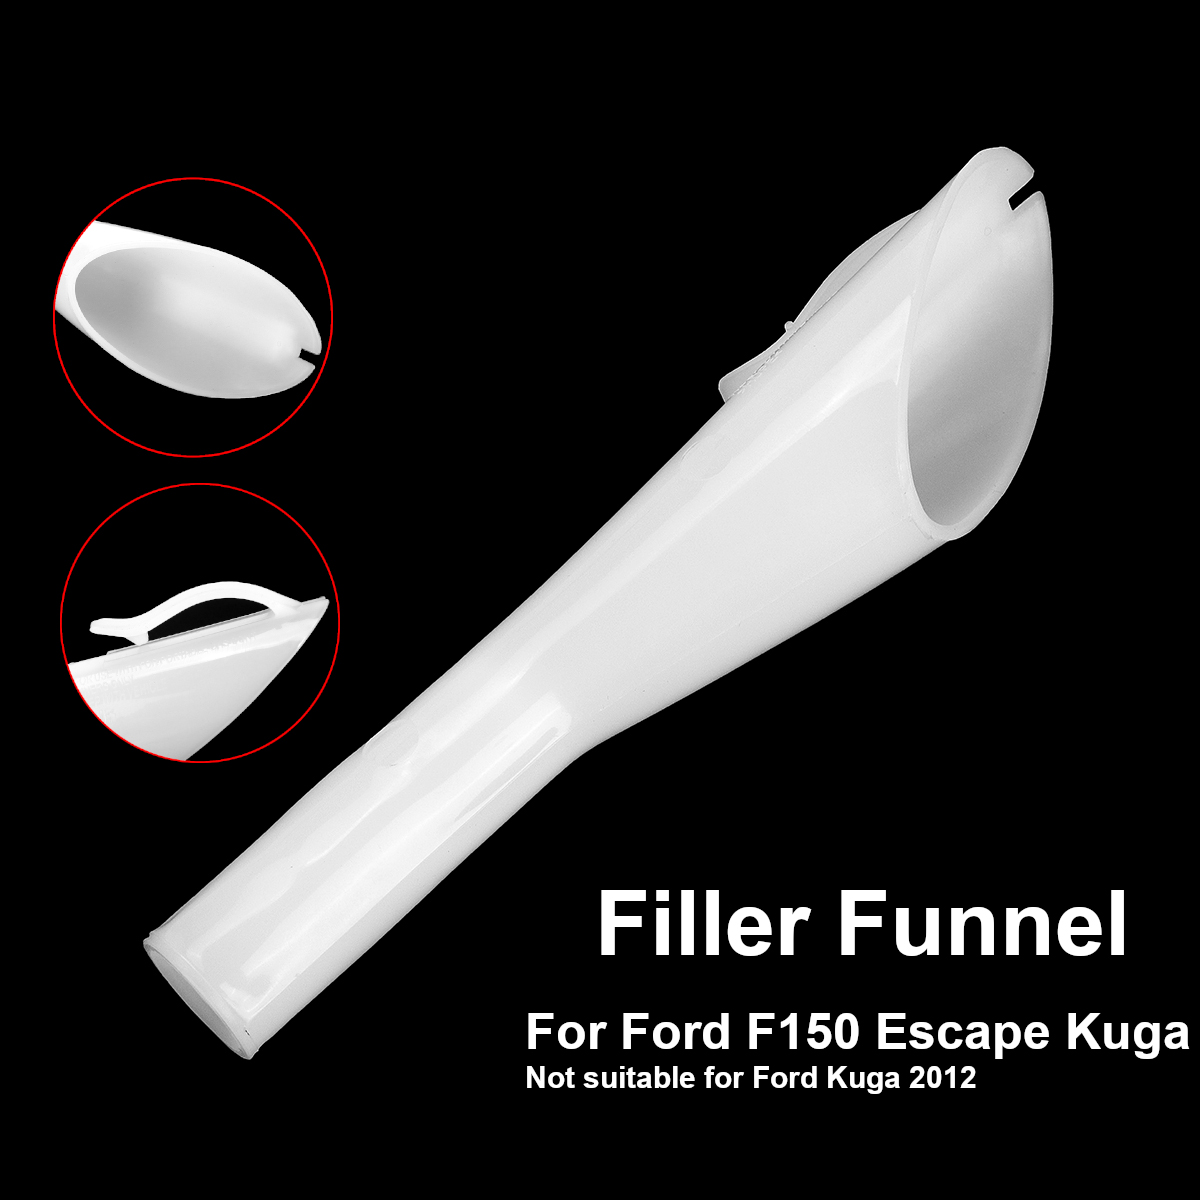 for ford escape for kuga pick up f150 for mondeo 2008 car petrol oil filler  funnel